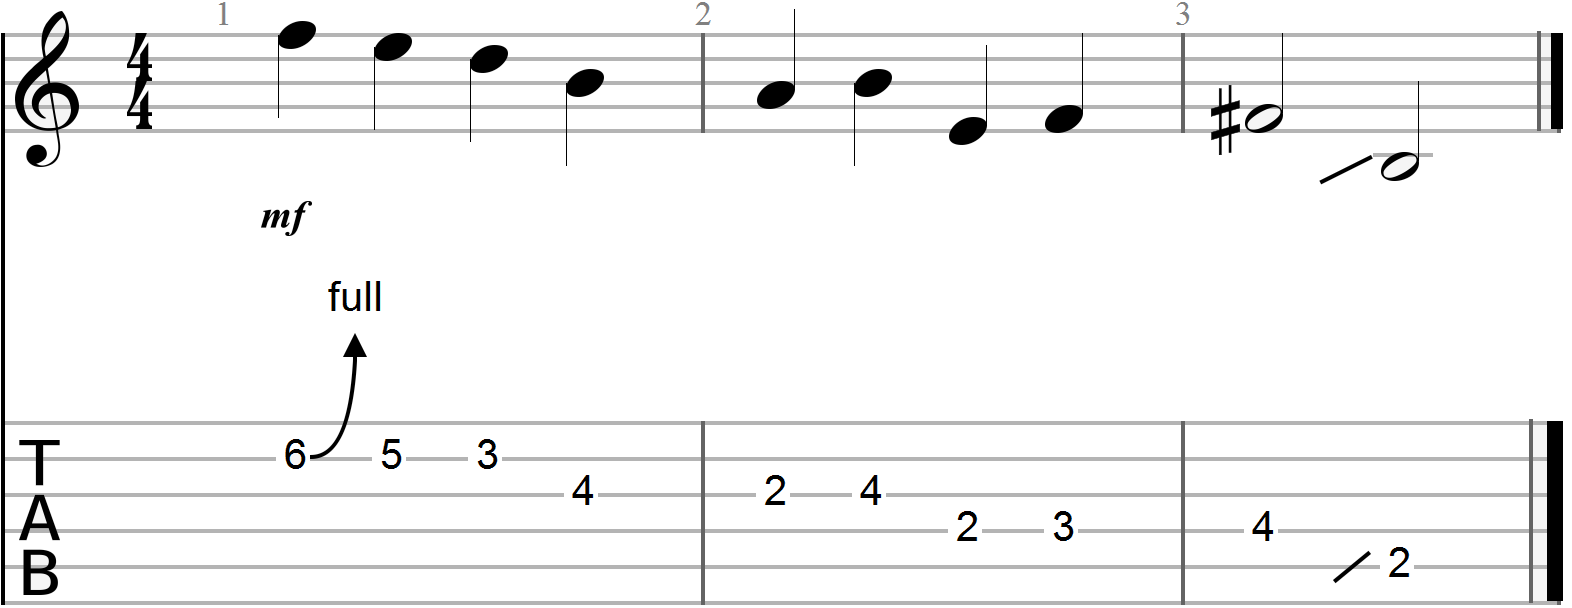 B7 Chord Charts, Exercises and Quick Guitar Lesson